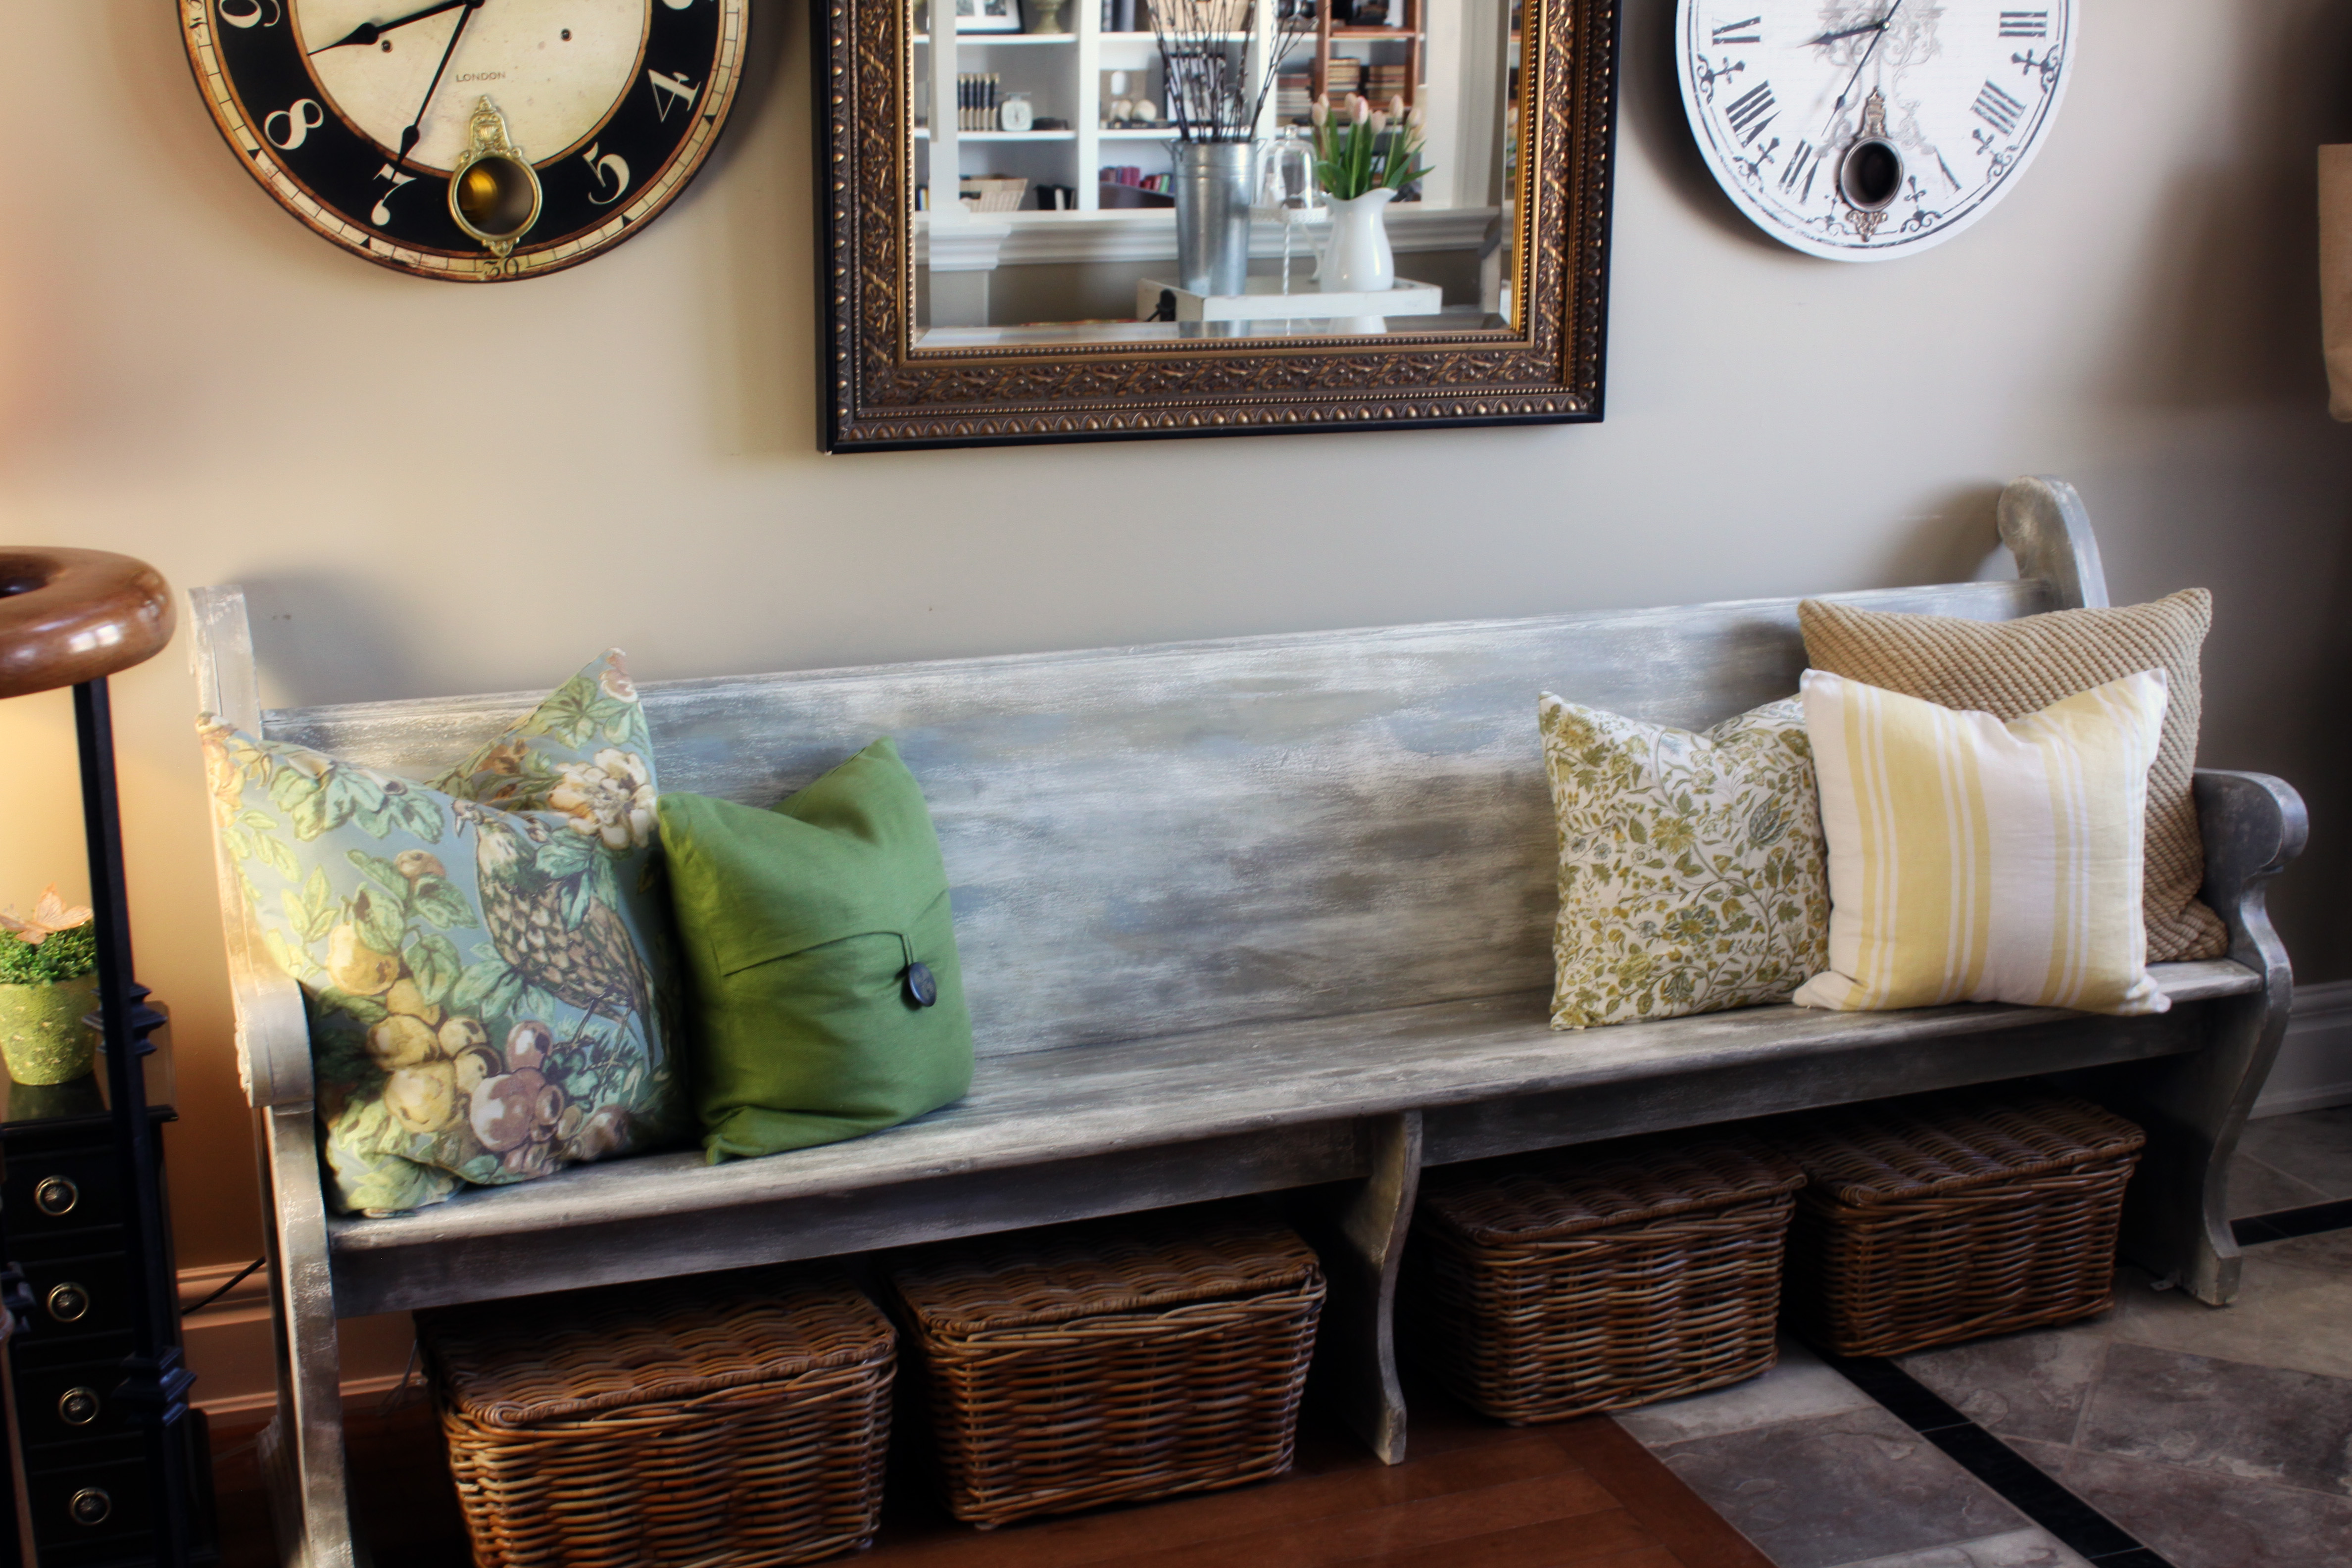 Love Using Old Church Pews In The Home And Baskets Underneath